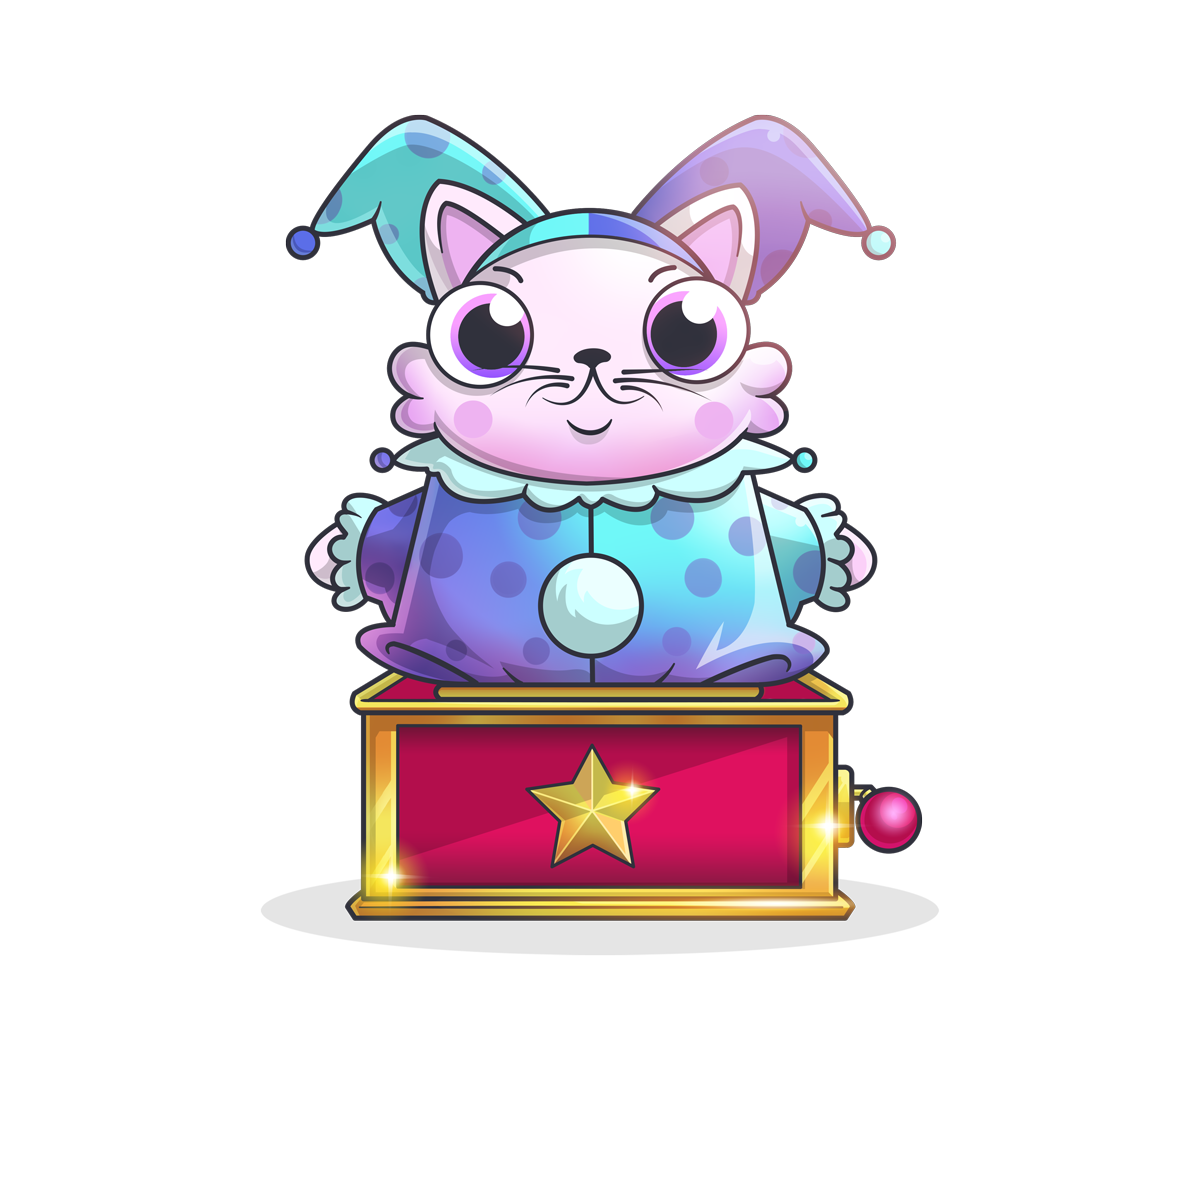 cryptokitty #1776477